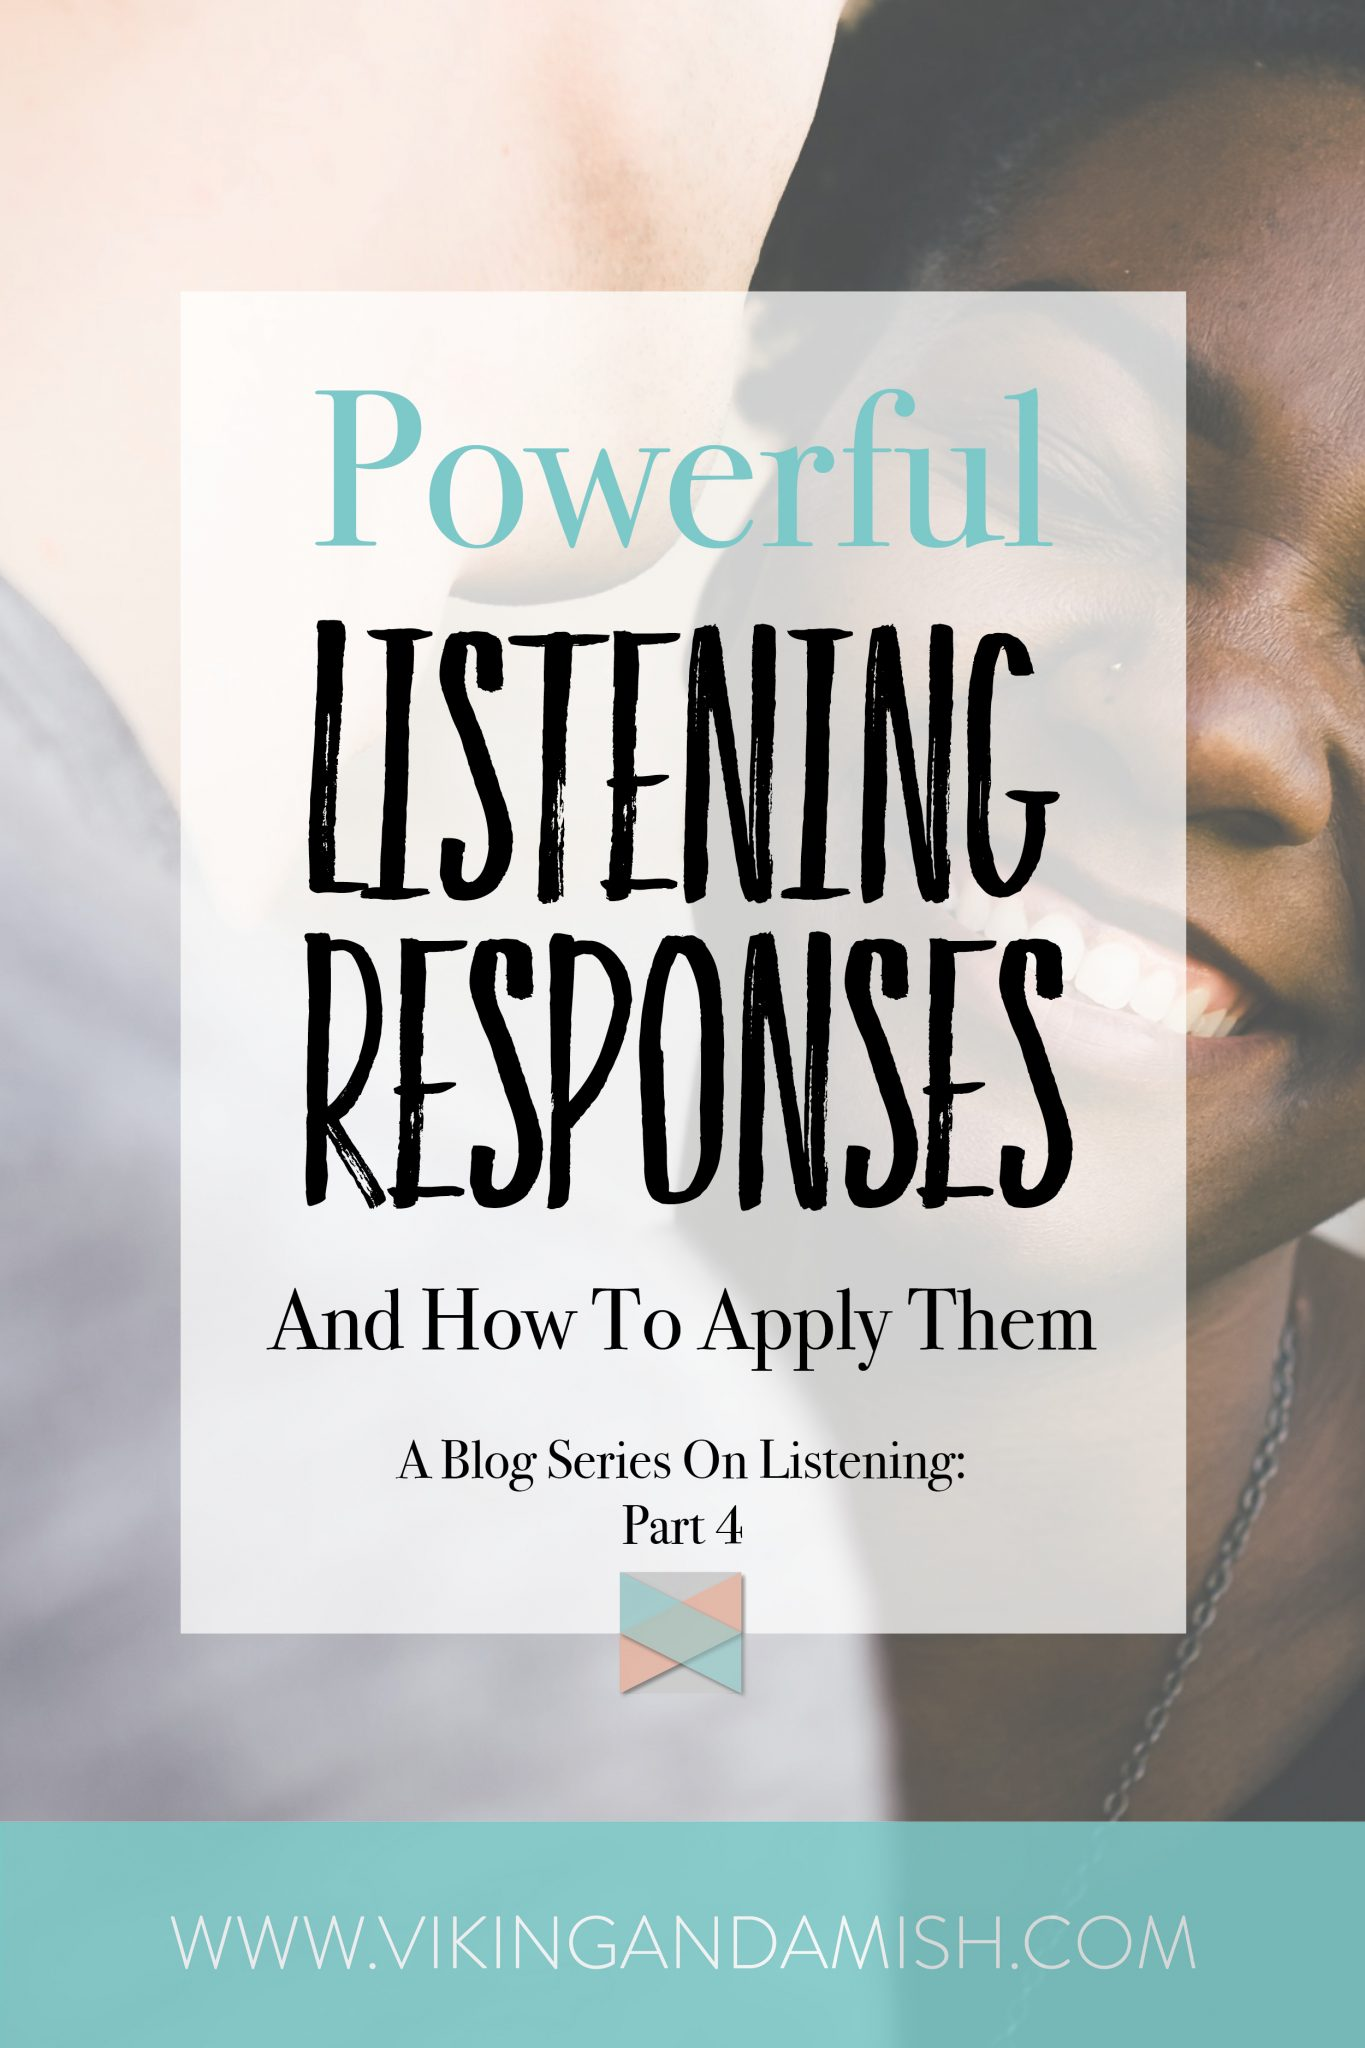 Good communication begins with listening, but listening is not always as easy as it seems. Learn how to use these powerful listening responses and become a better communicator.